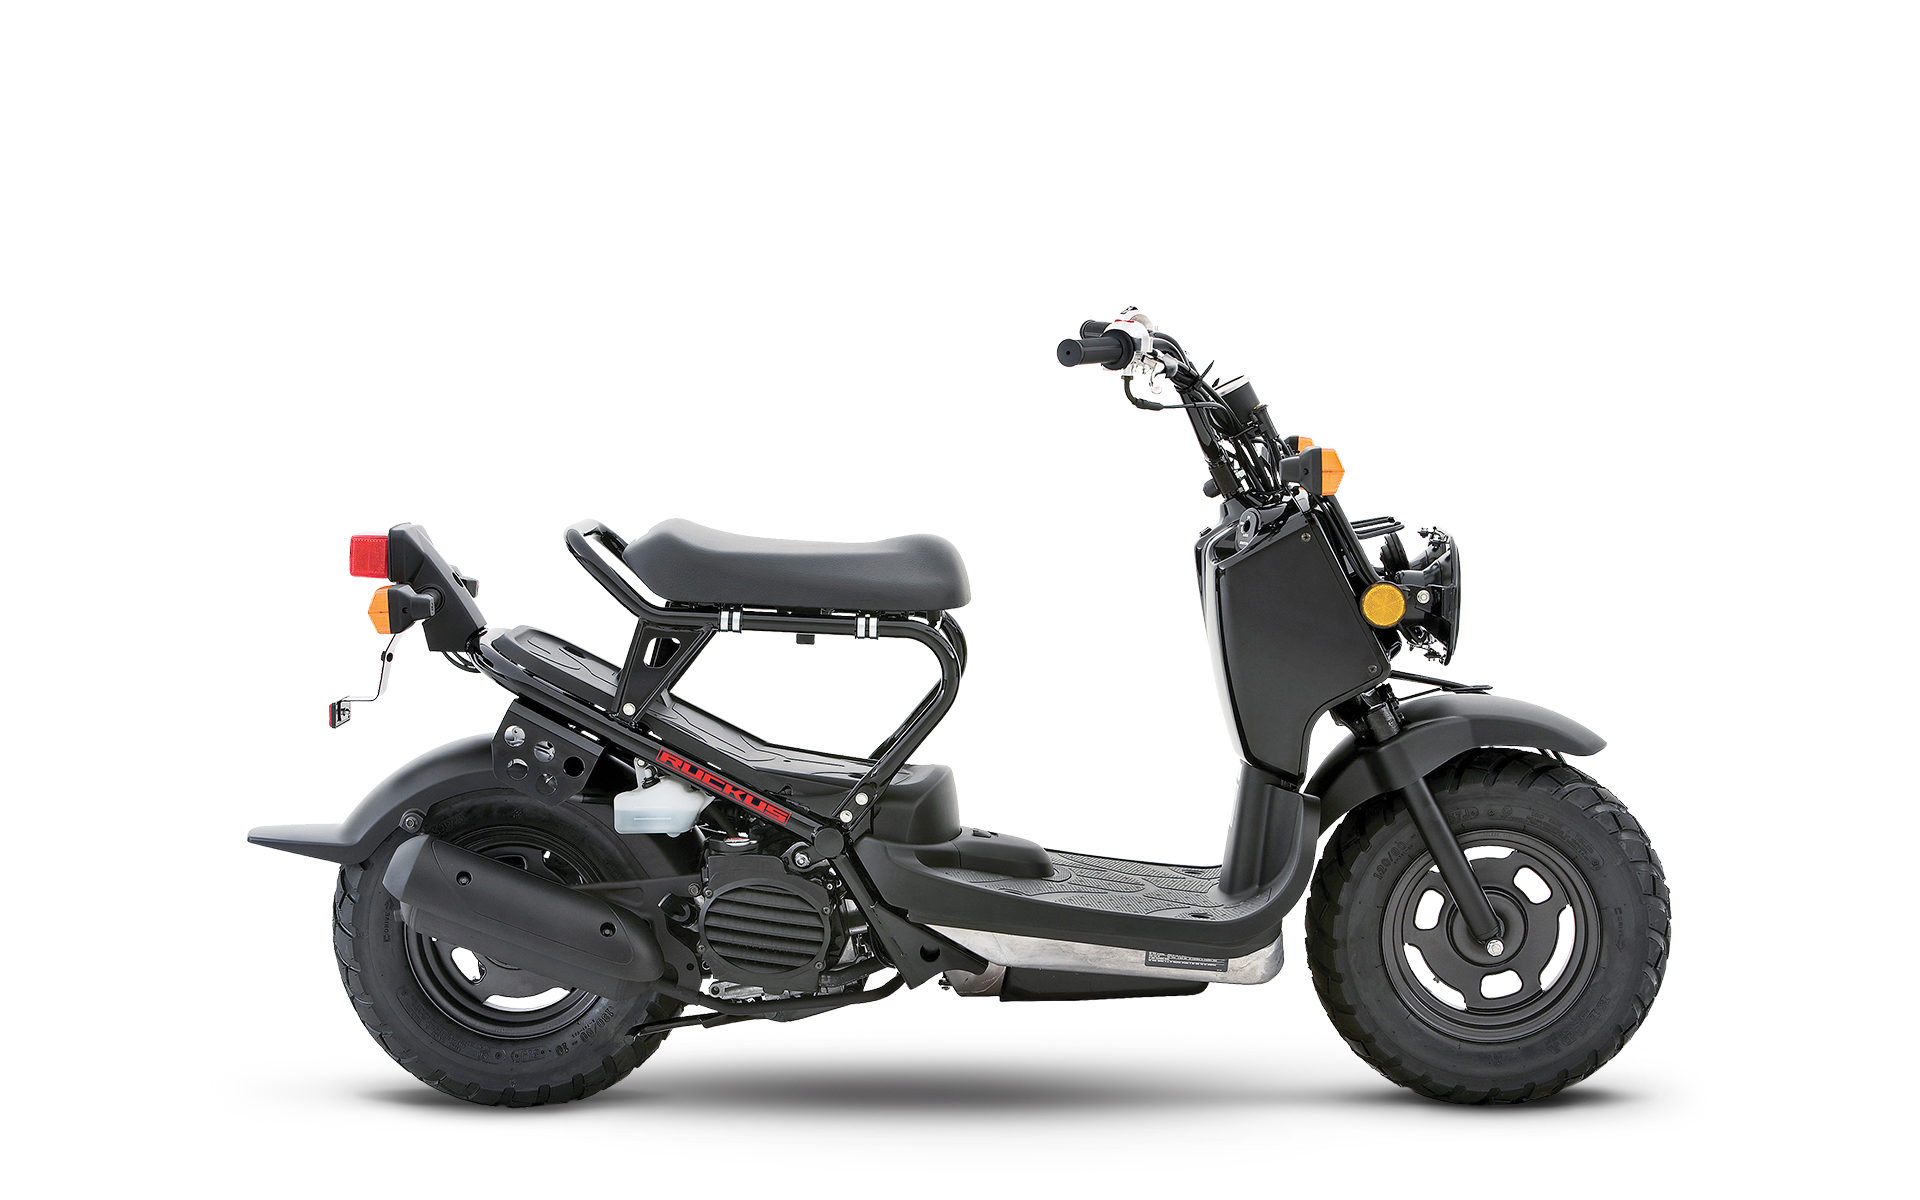 ruckus honda scooter start a ruckus. Black Bedroom Furniture Sets. Home Design Ideas